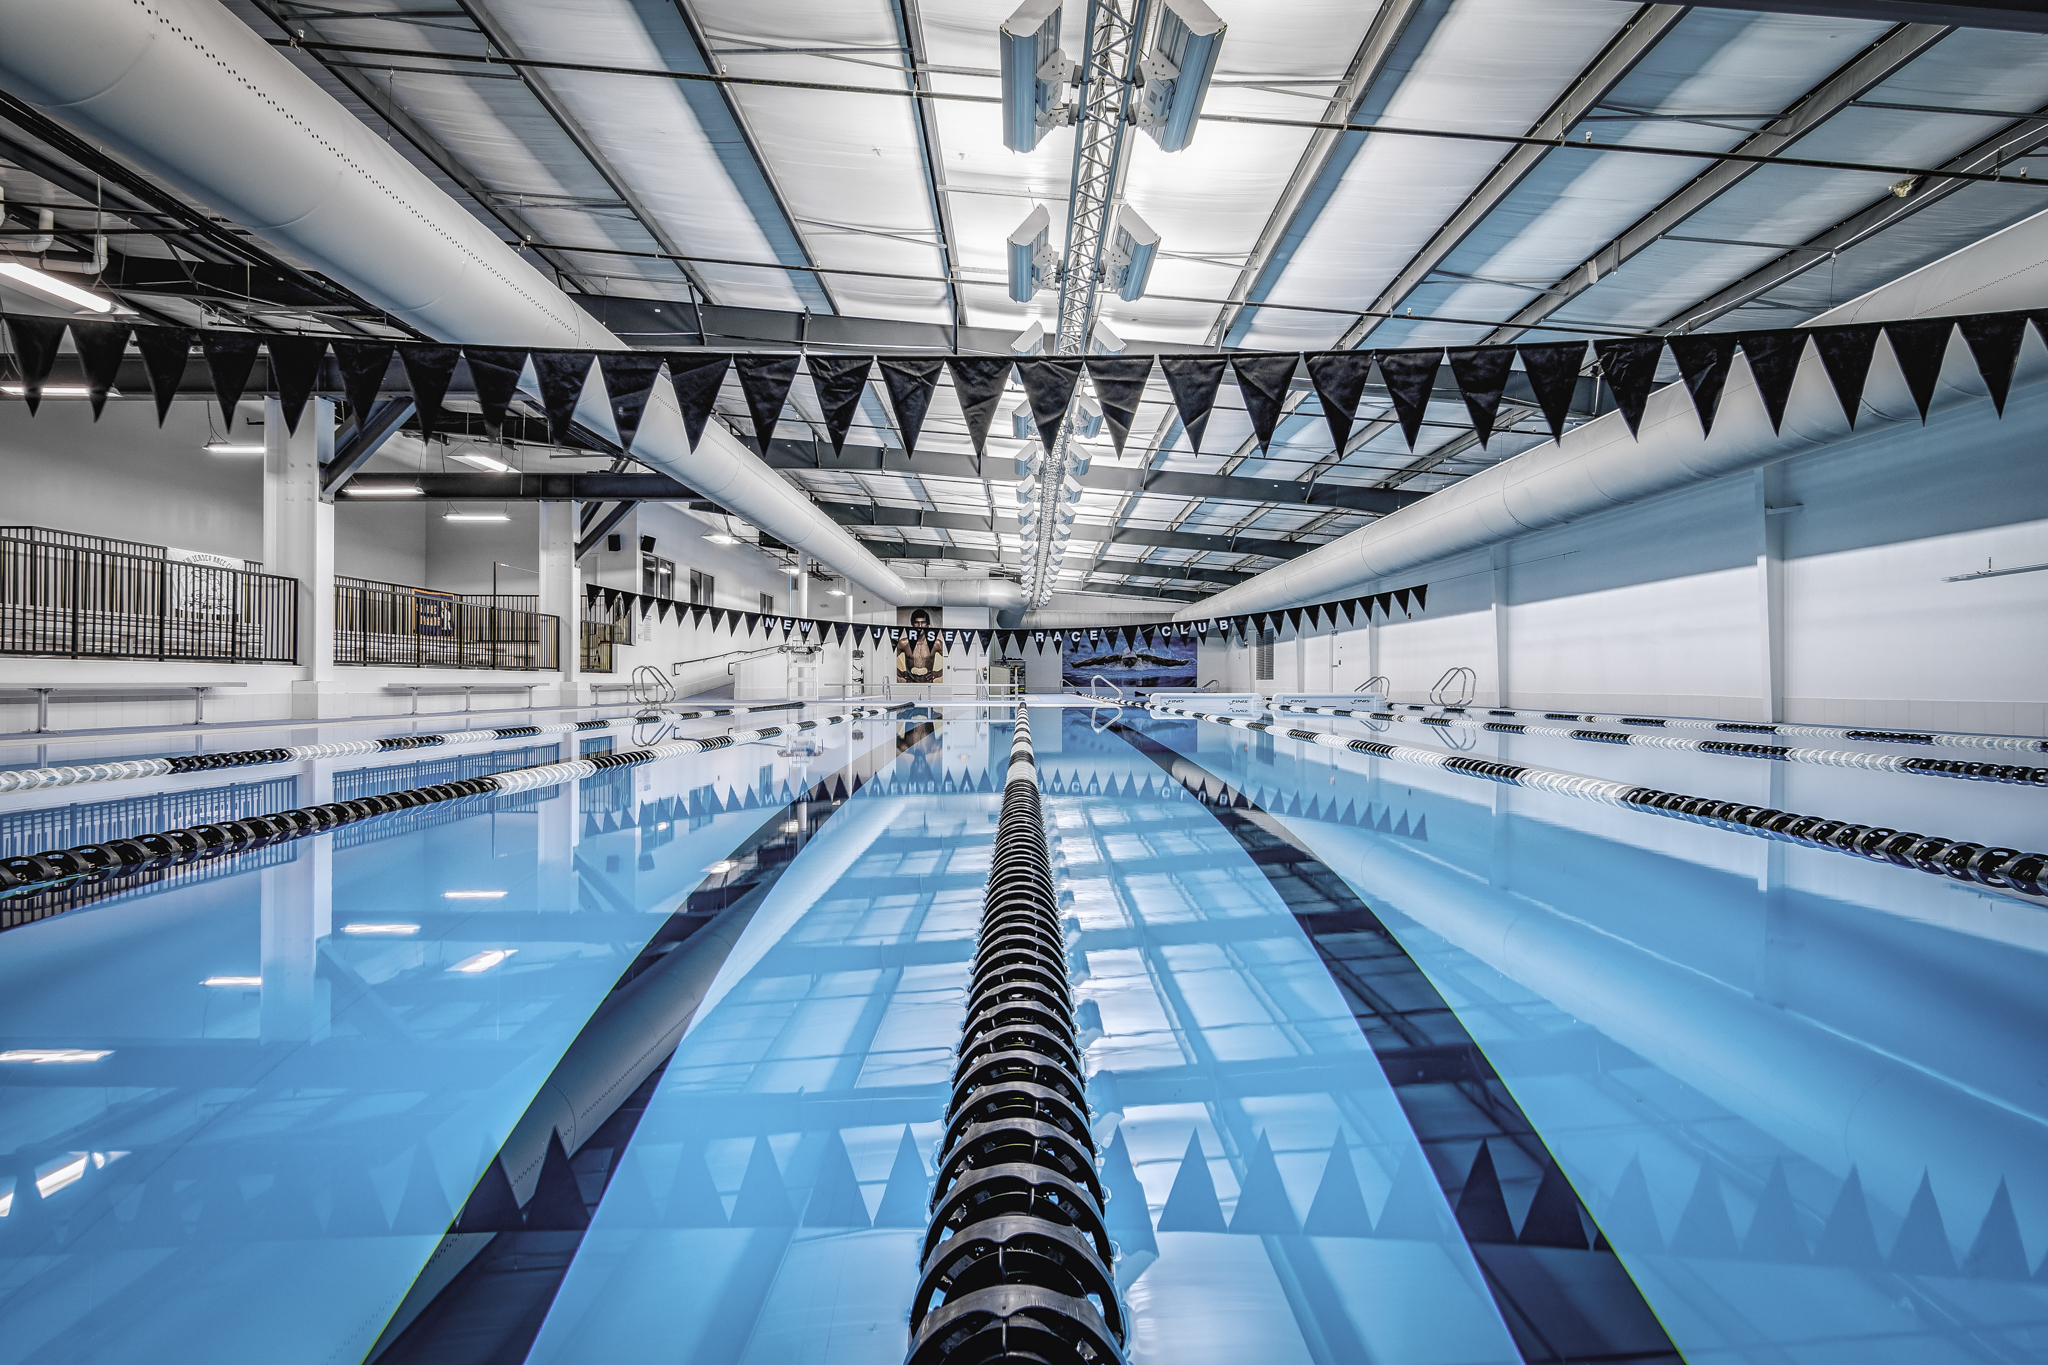 swimquest_4_commercial_Msparkphoto (1 of 1).jpg